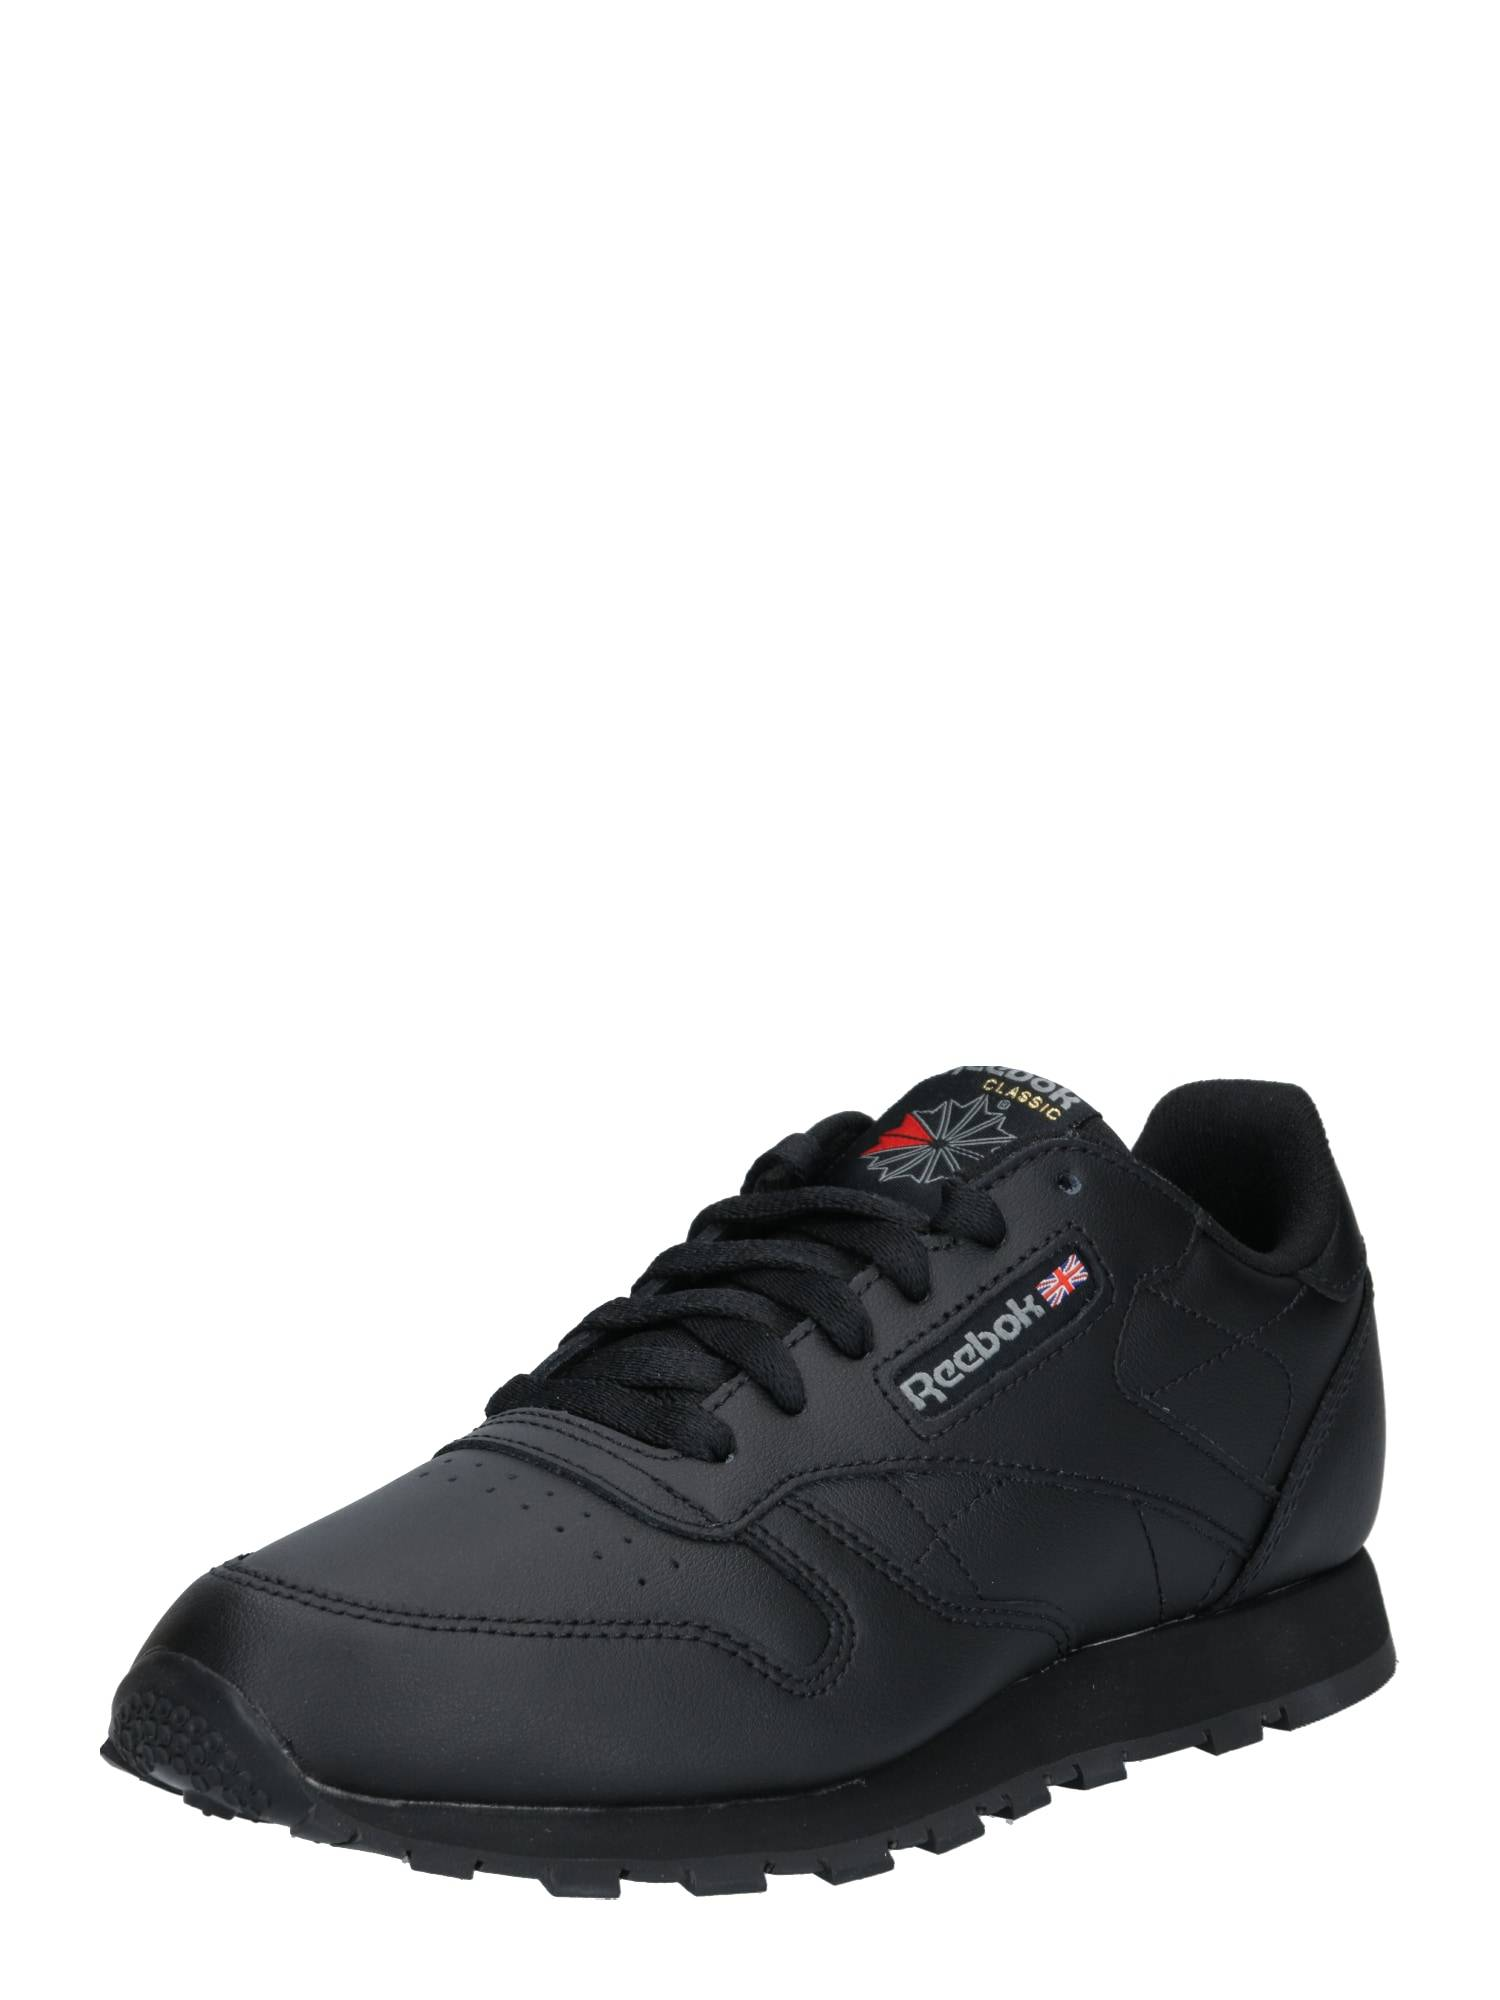 Reebok Classic Baskets 'CLASSIC LEATHER'  - Noir - Taille: 2 - girl